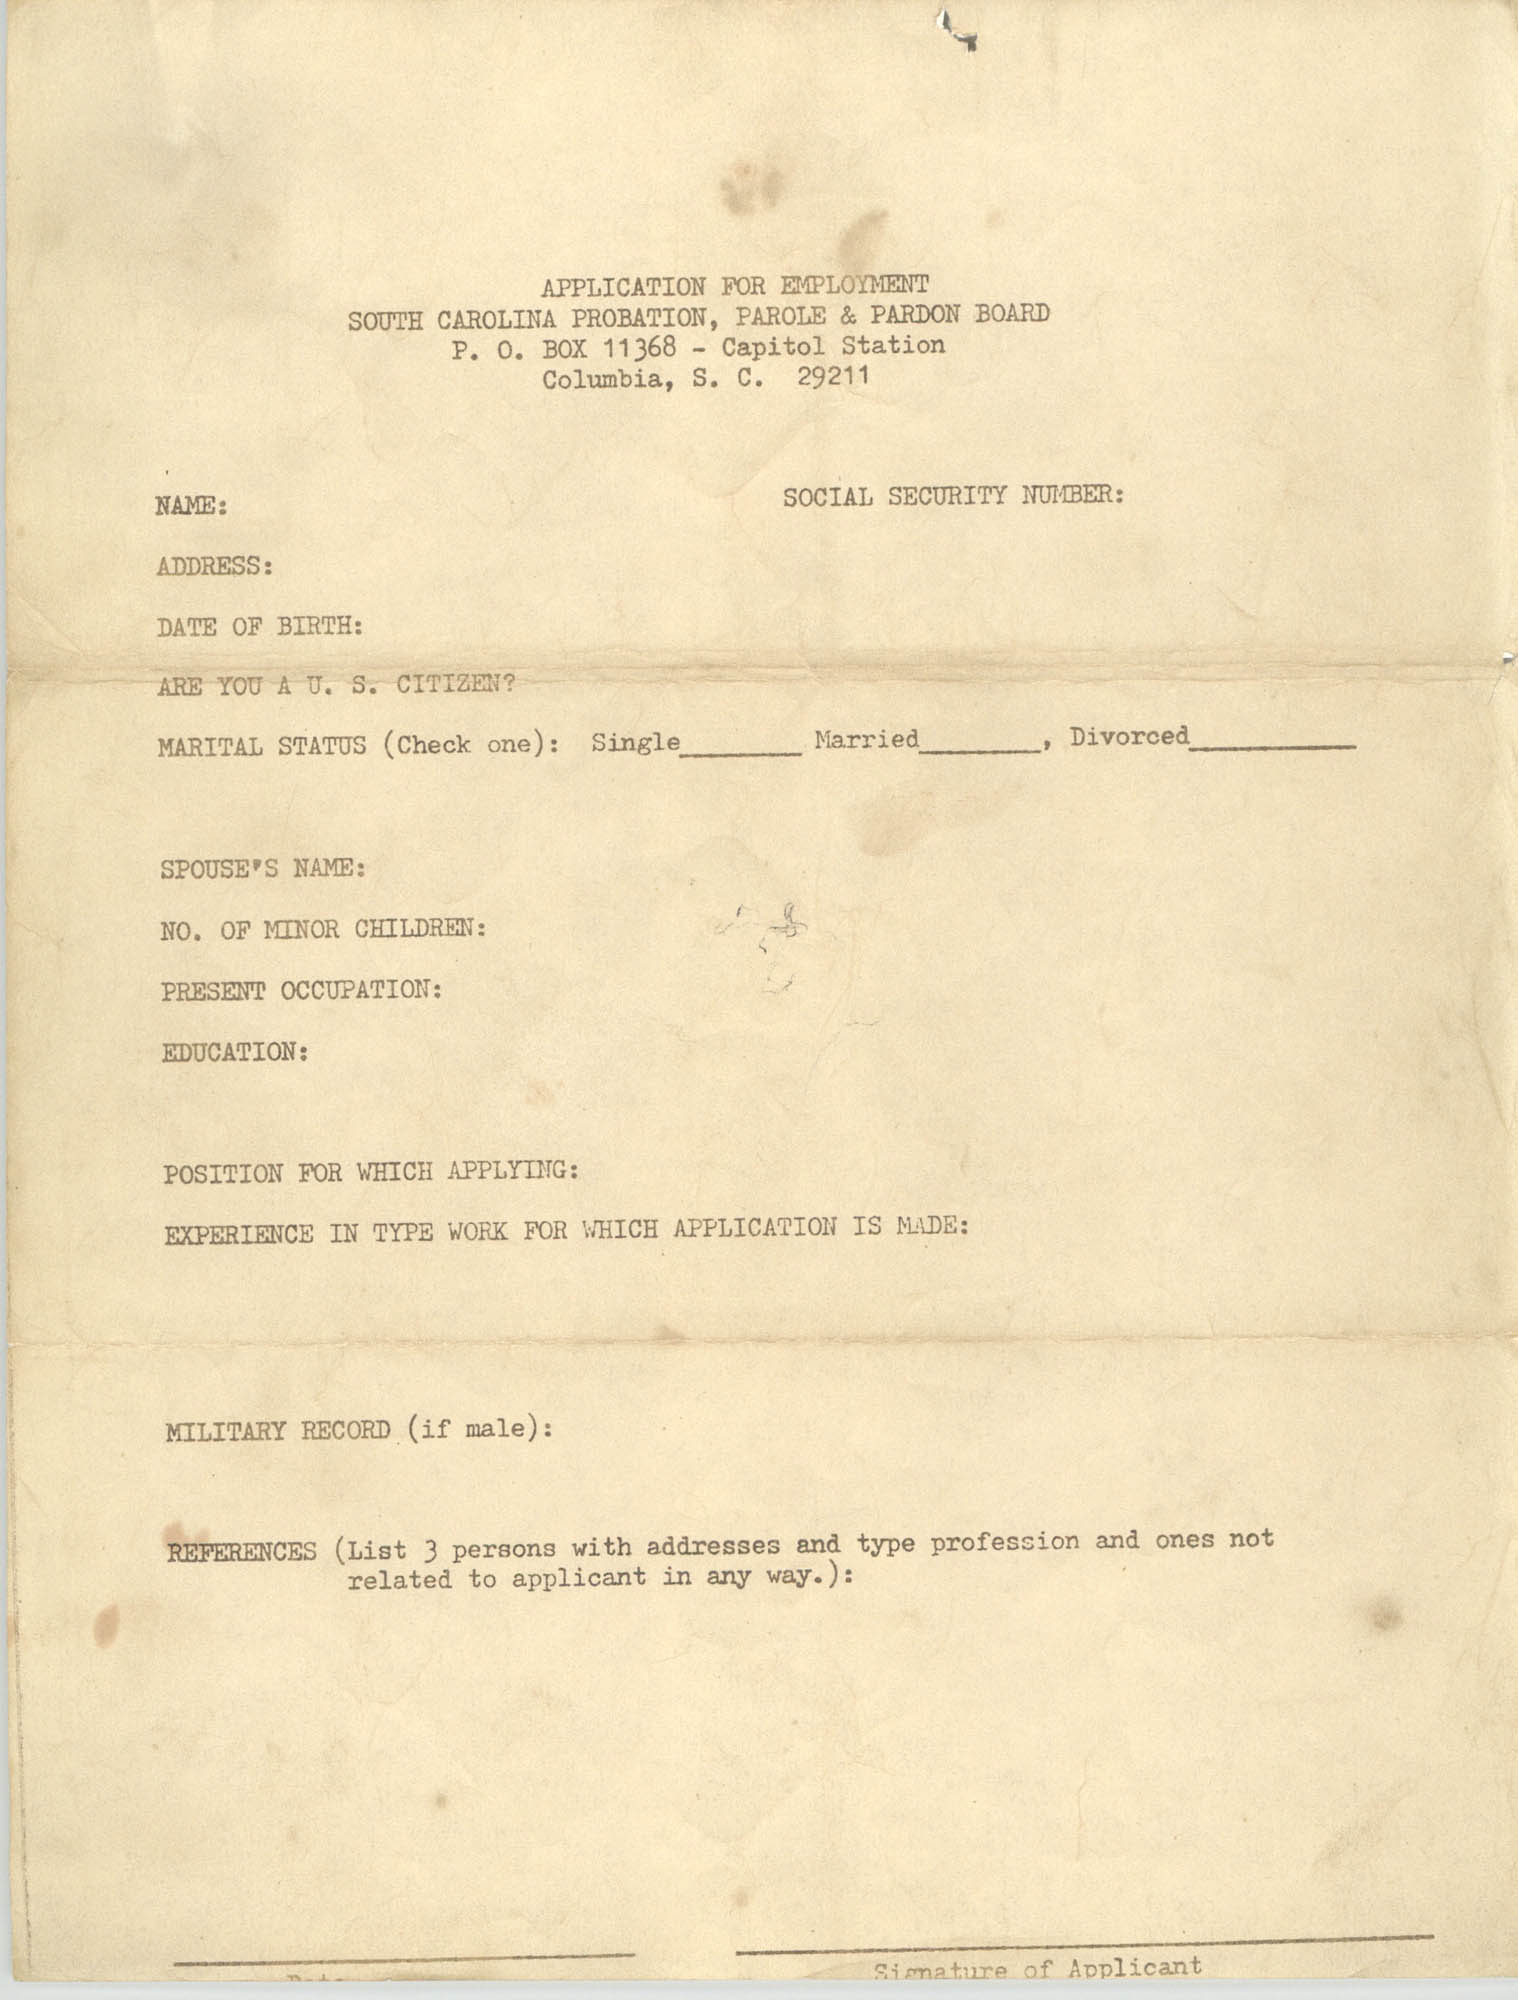 Application for Employment to the South Carolina Probation, Parole and Pardon Board